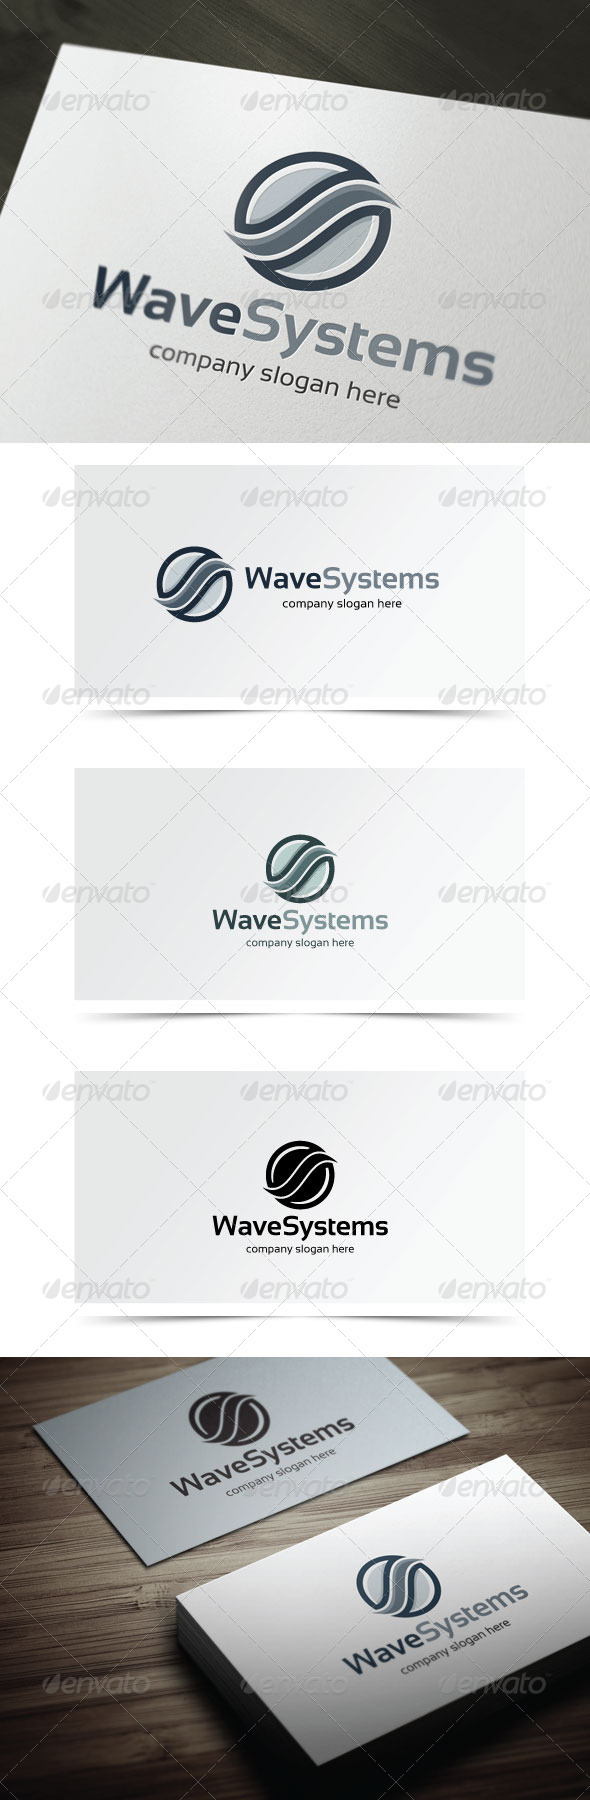 GraphicRiver Wave Systems 5926554